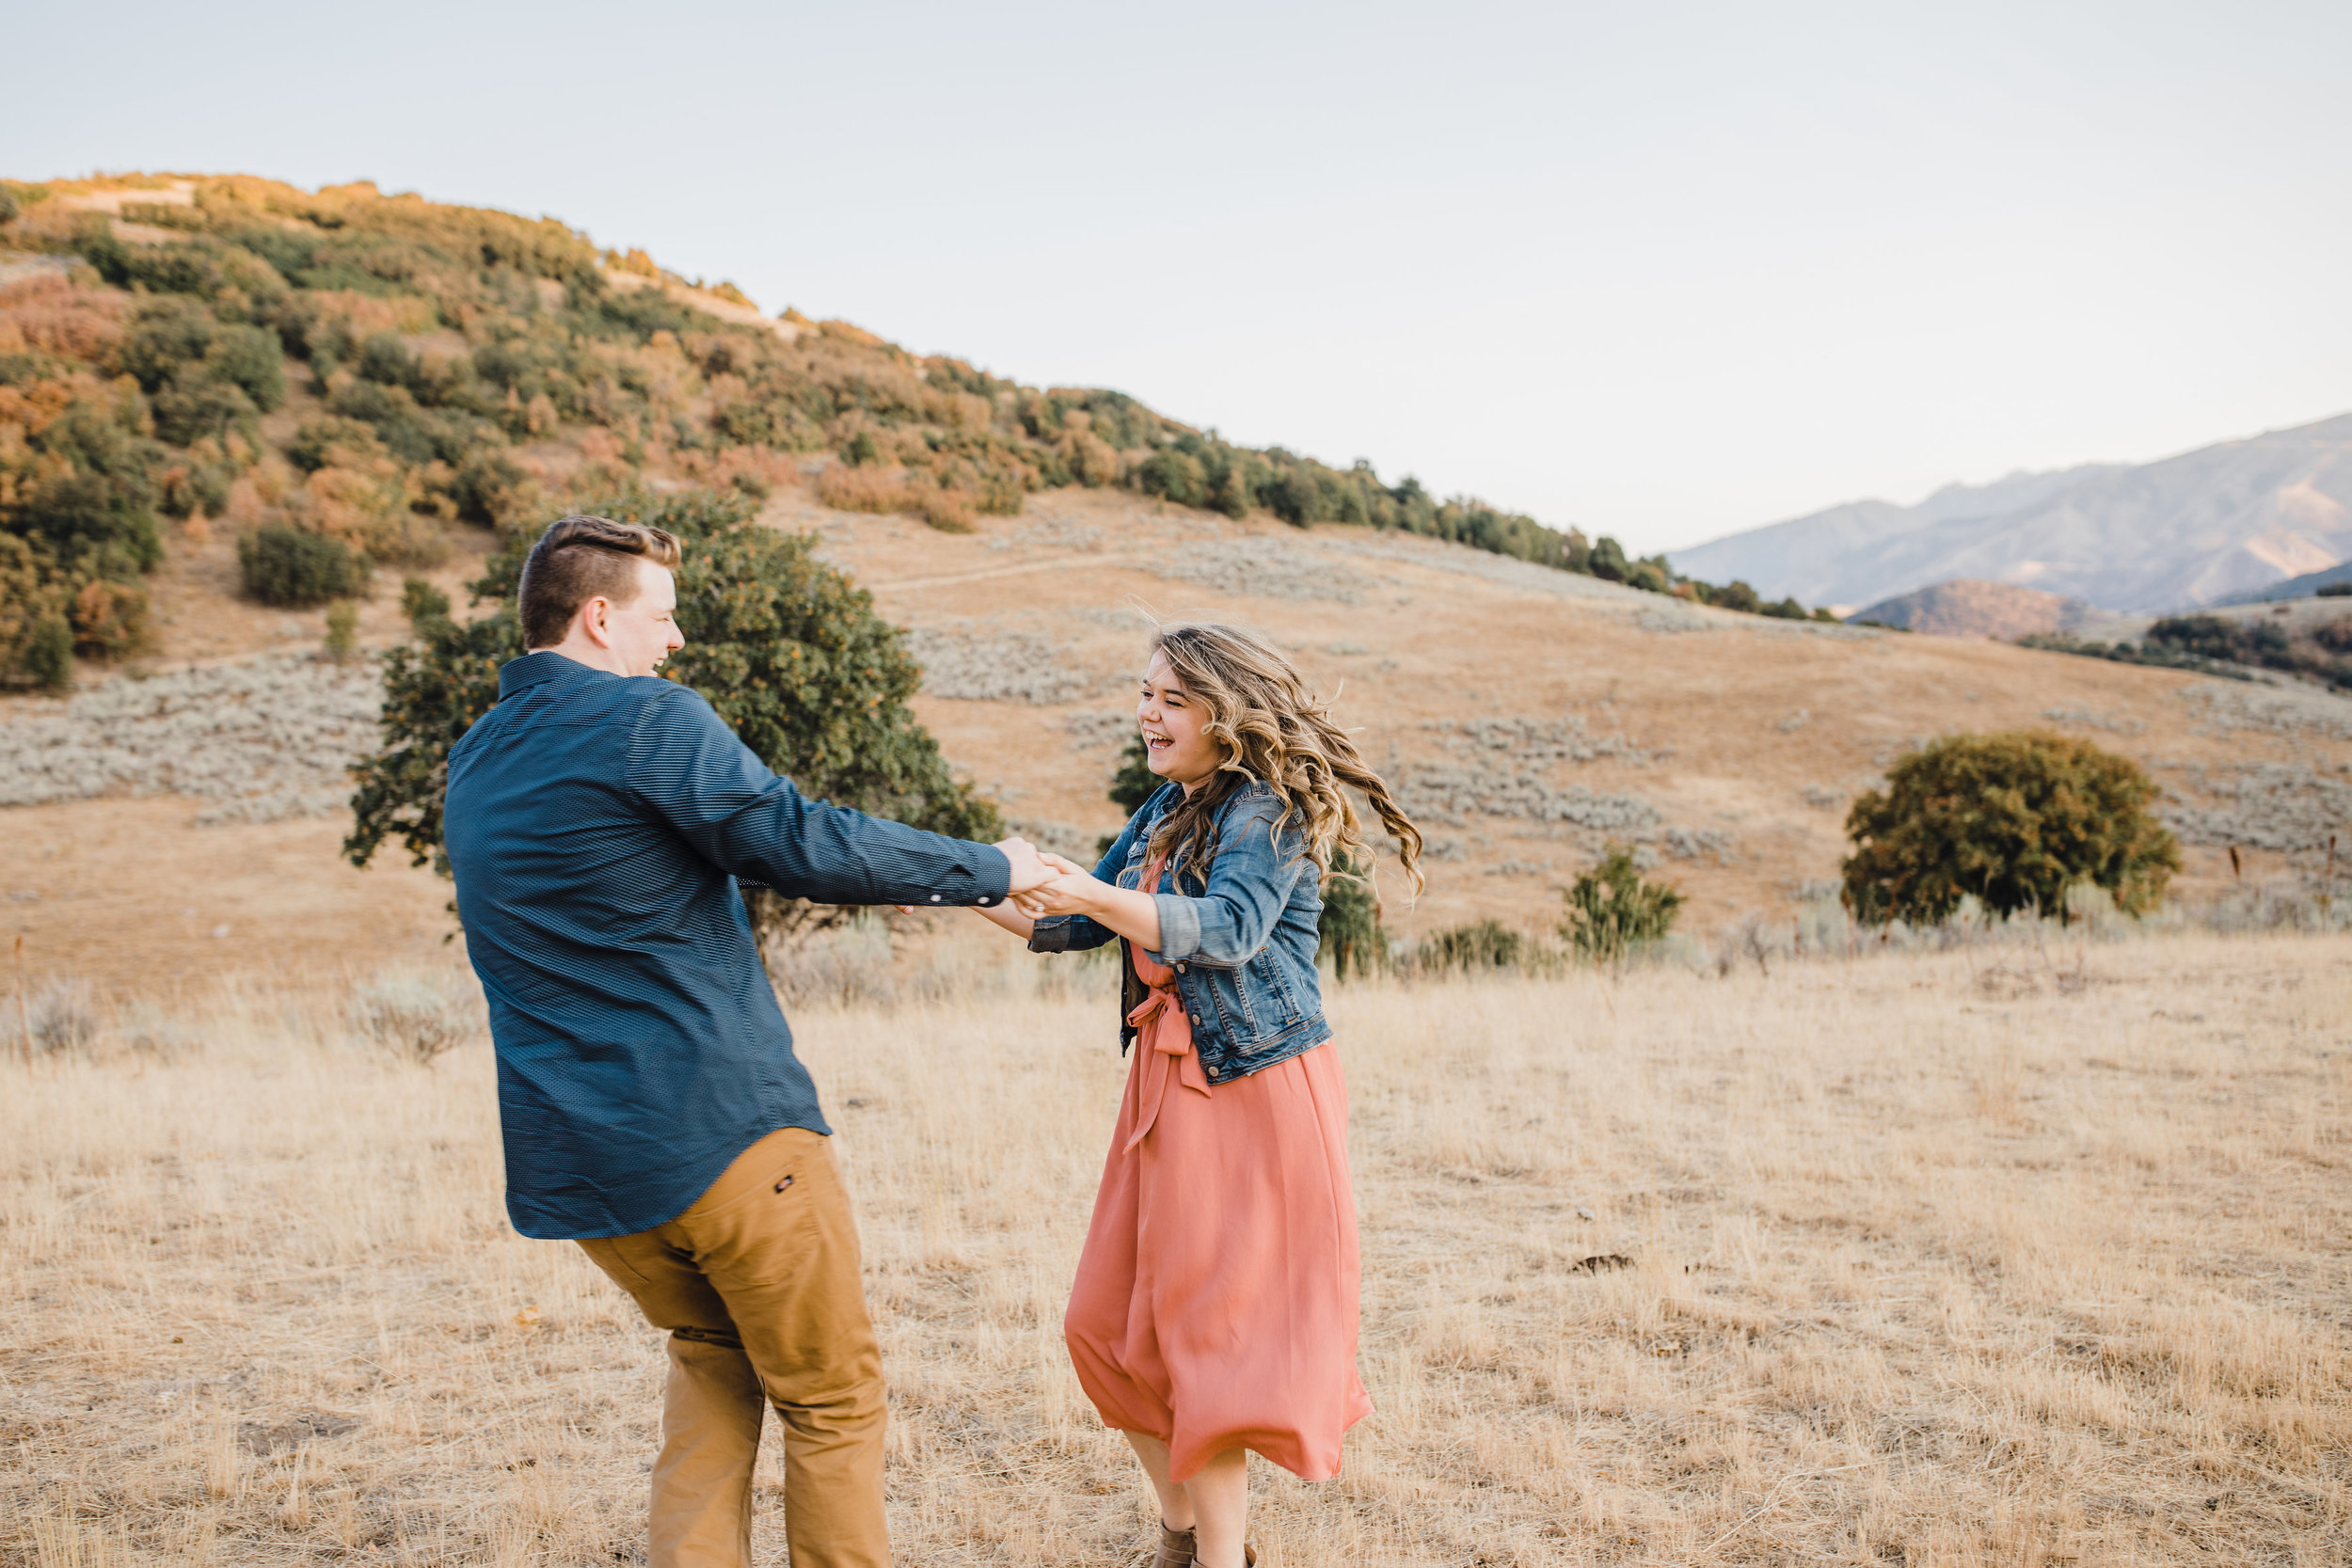 best professional cache valley engagement photographer dancing laughing playful mountains flying curls